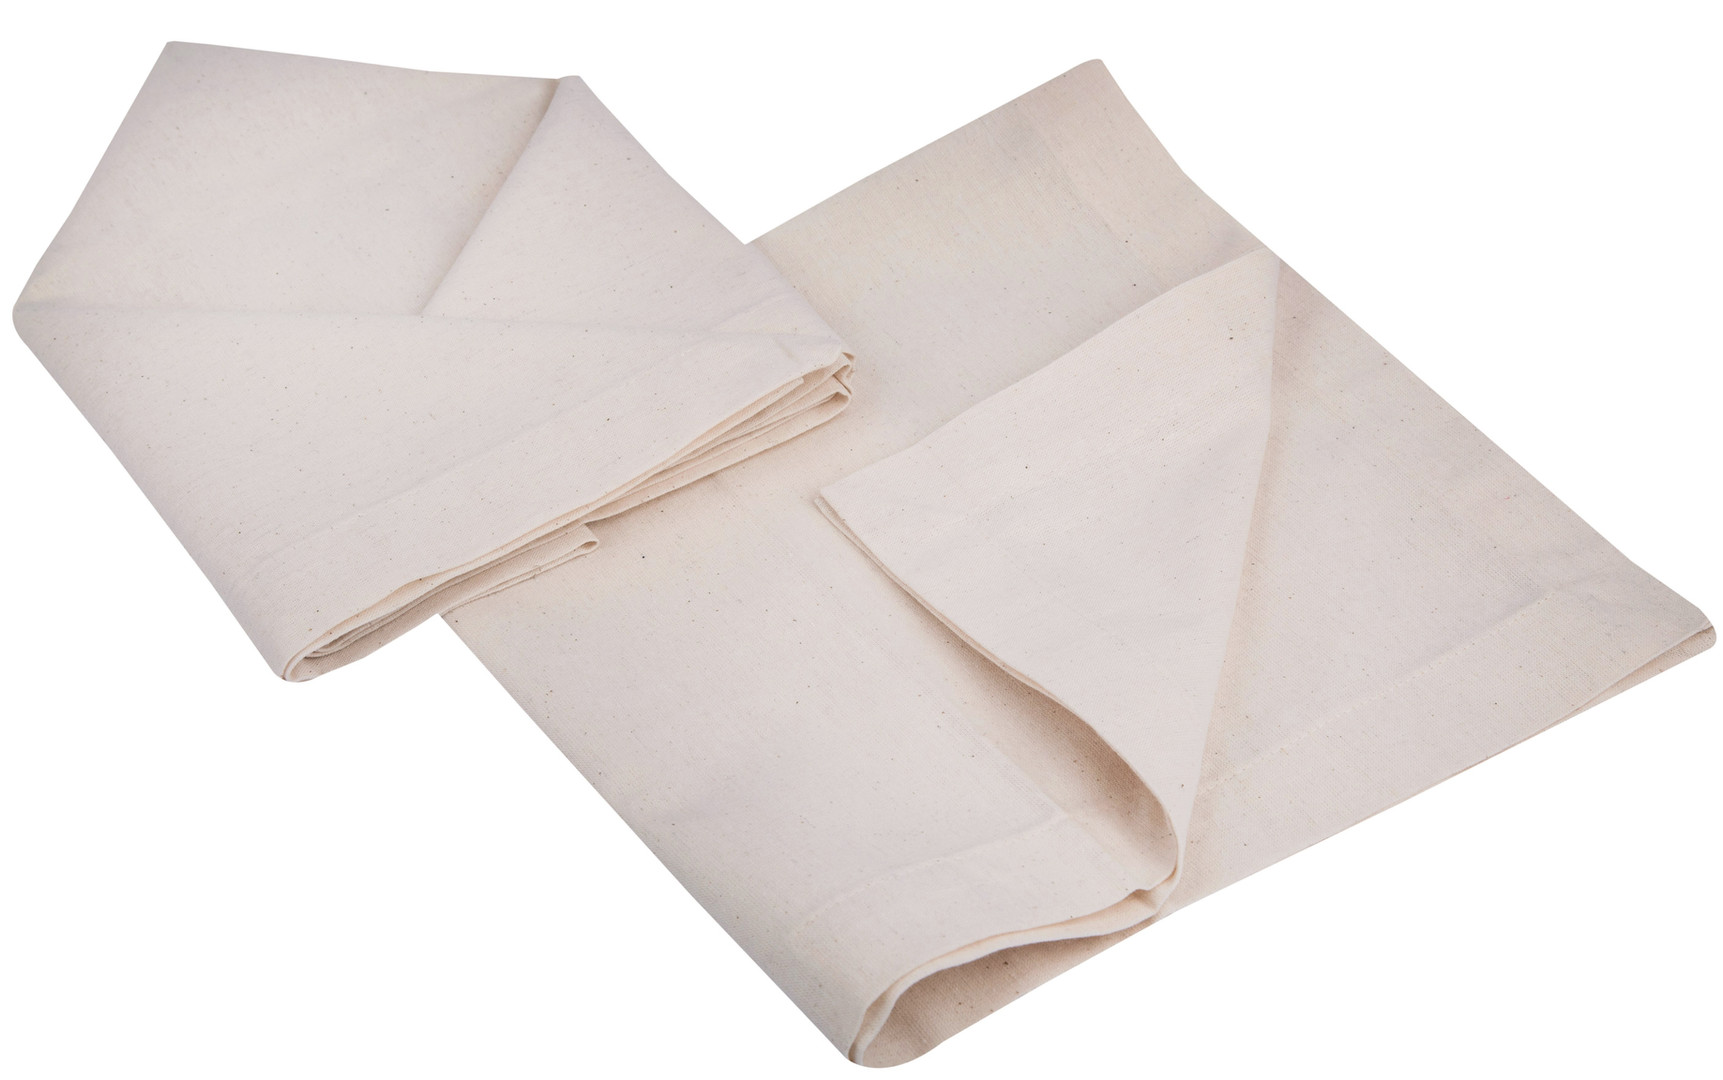 Atmos Green Recycled Cotton Napkins - Off White Color